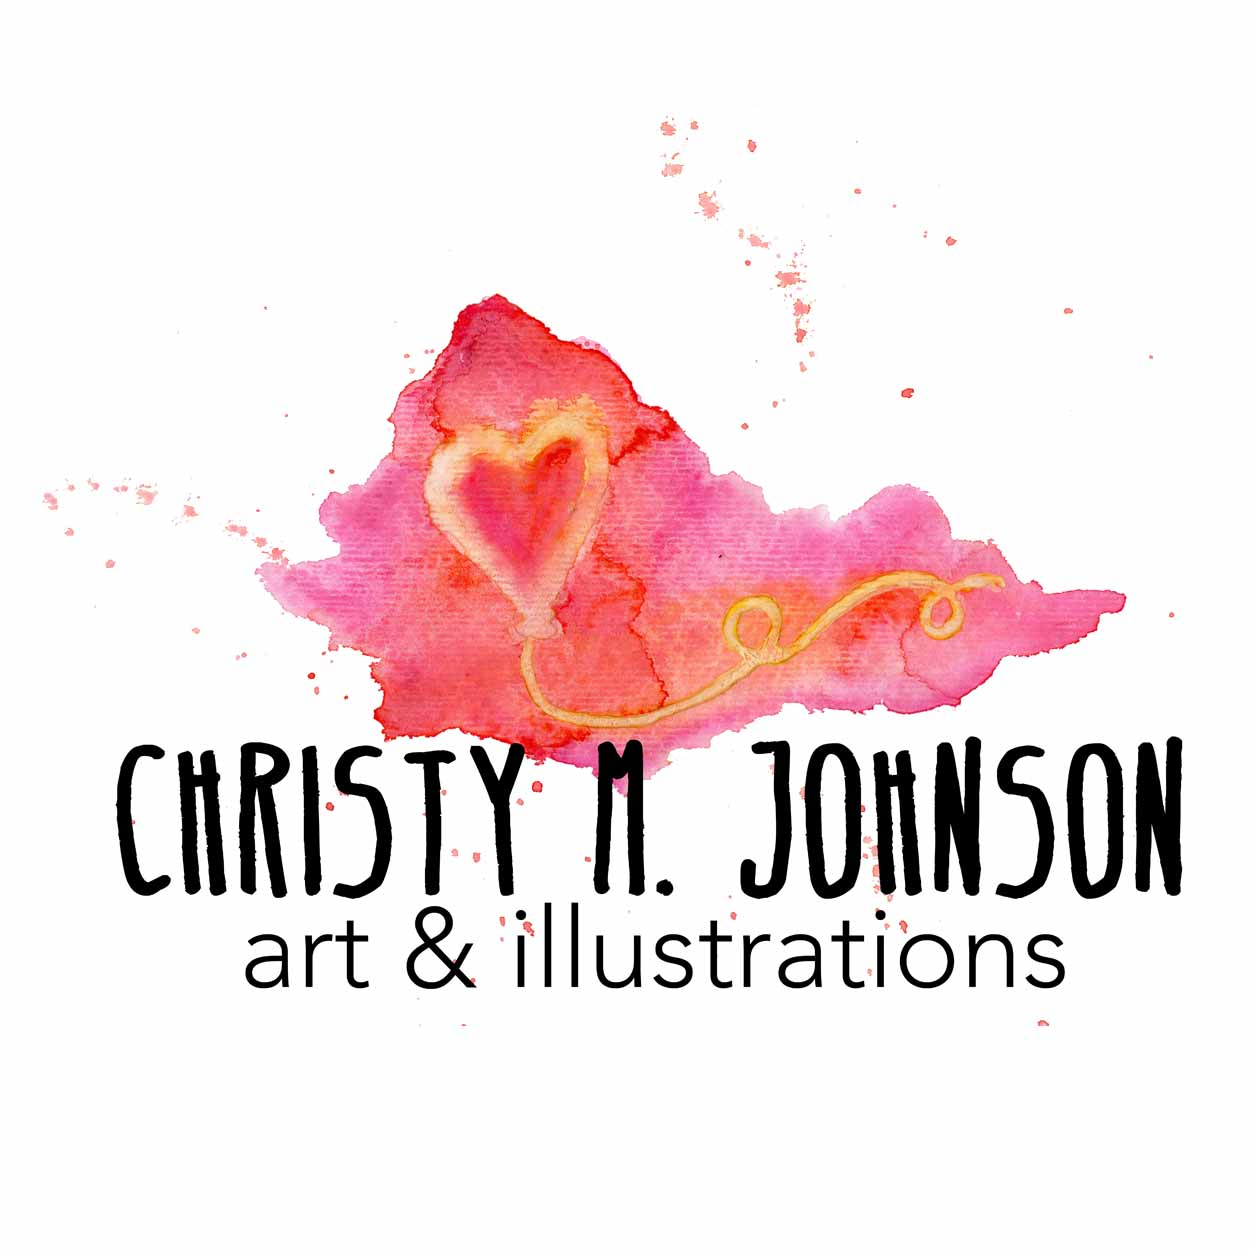 Christy M Johnson Art & Illustrations